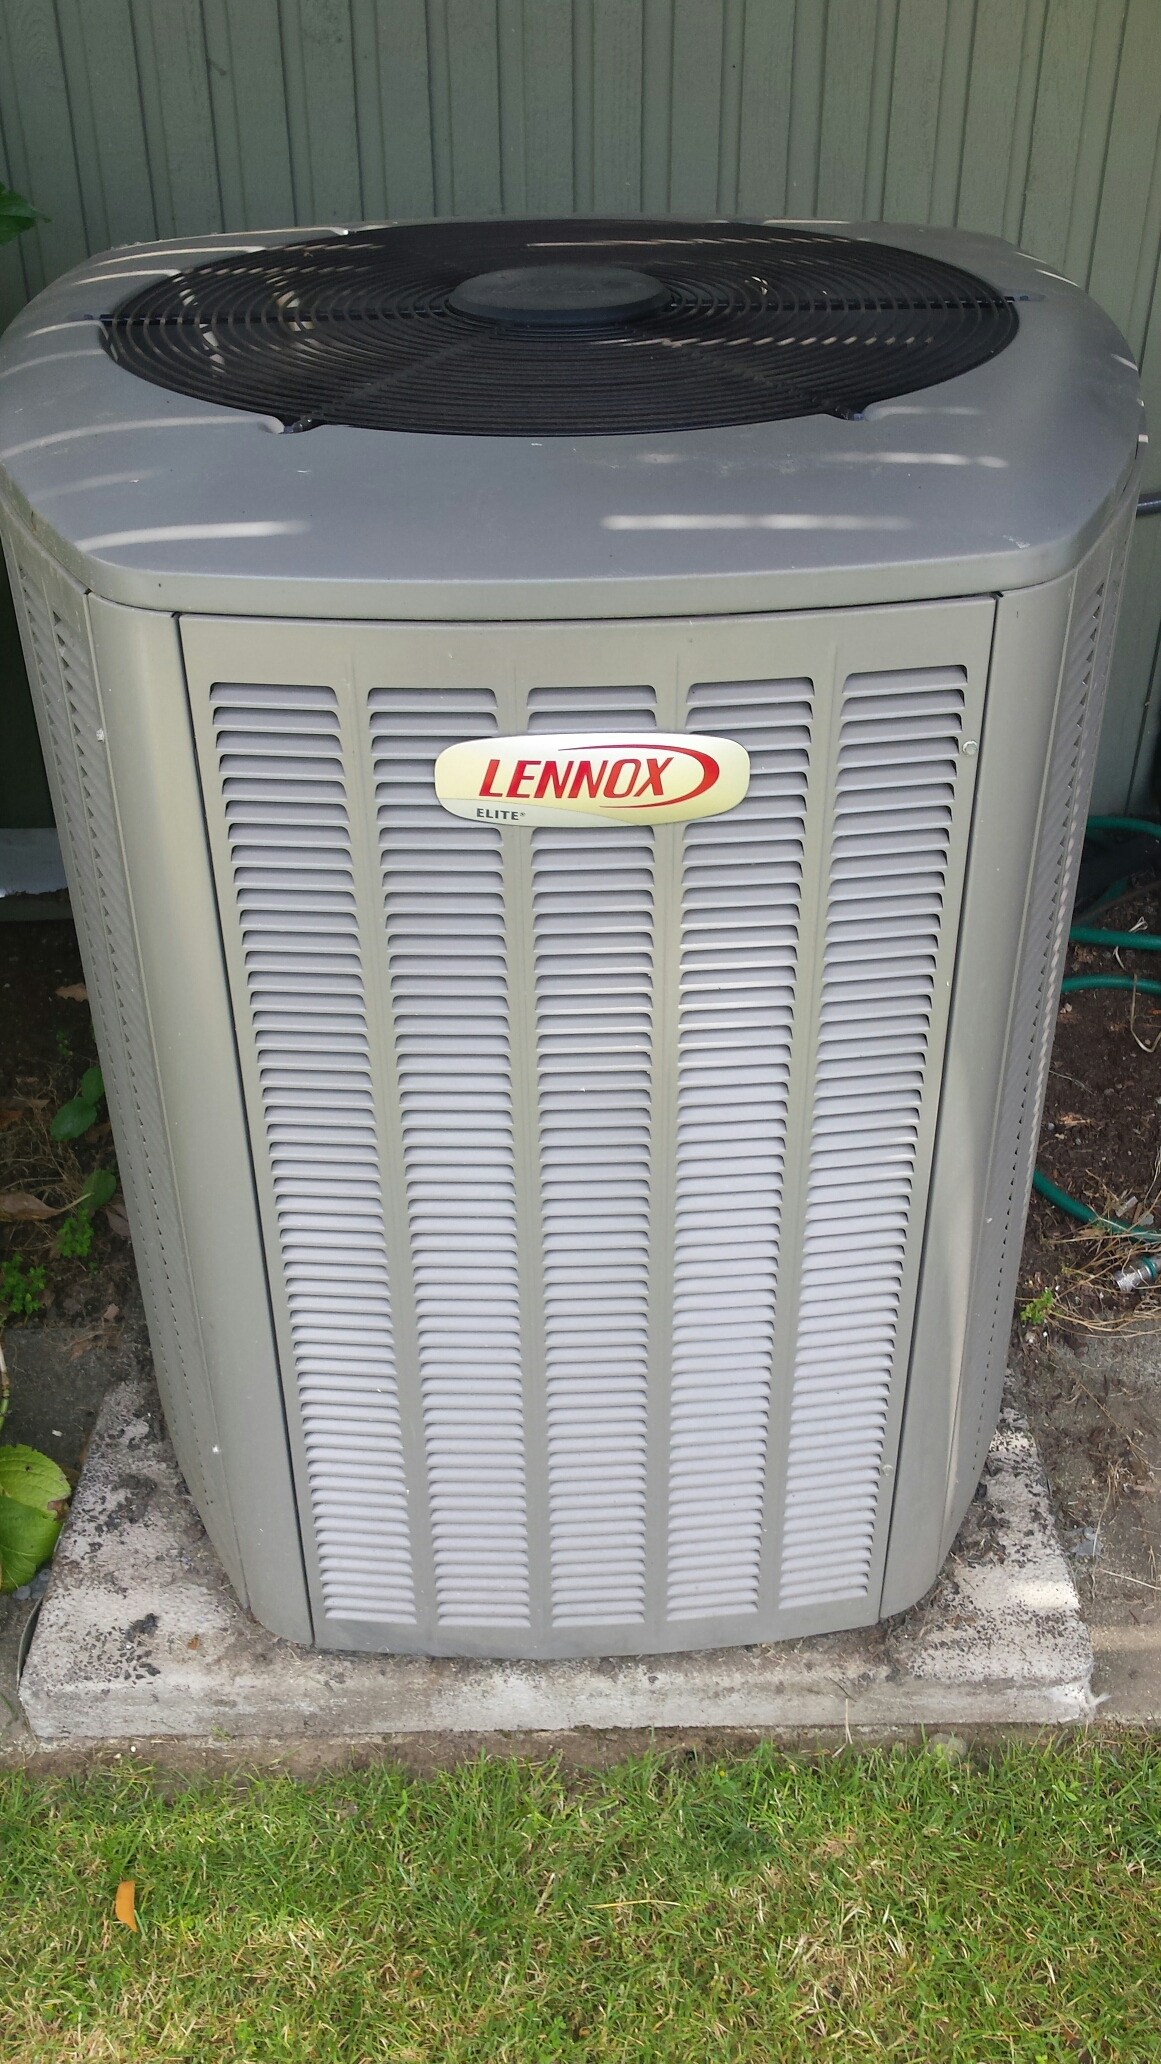 Kirkland, WA - Completed a diagnostic on a Lennox dual fuel system in kirkland